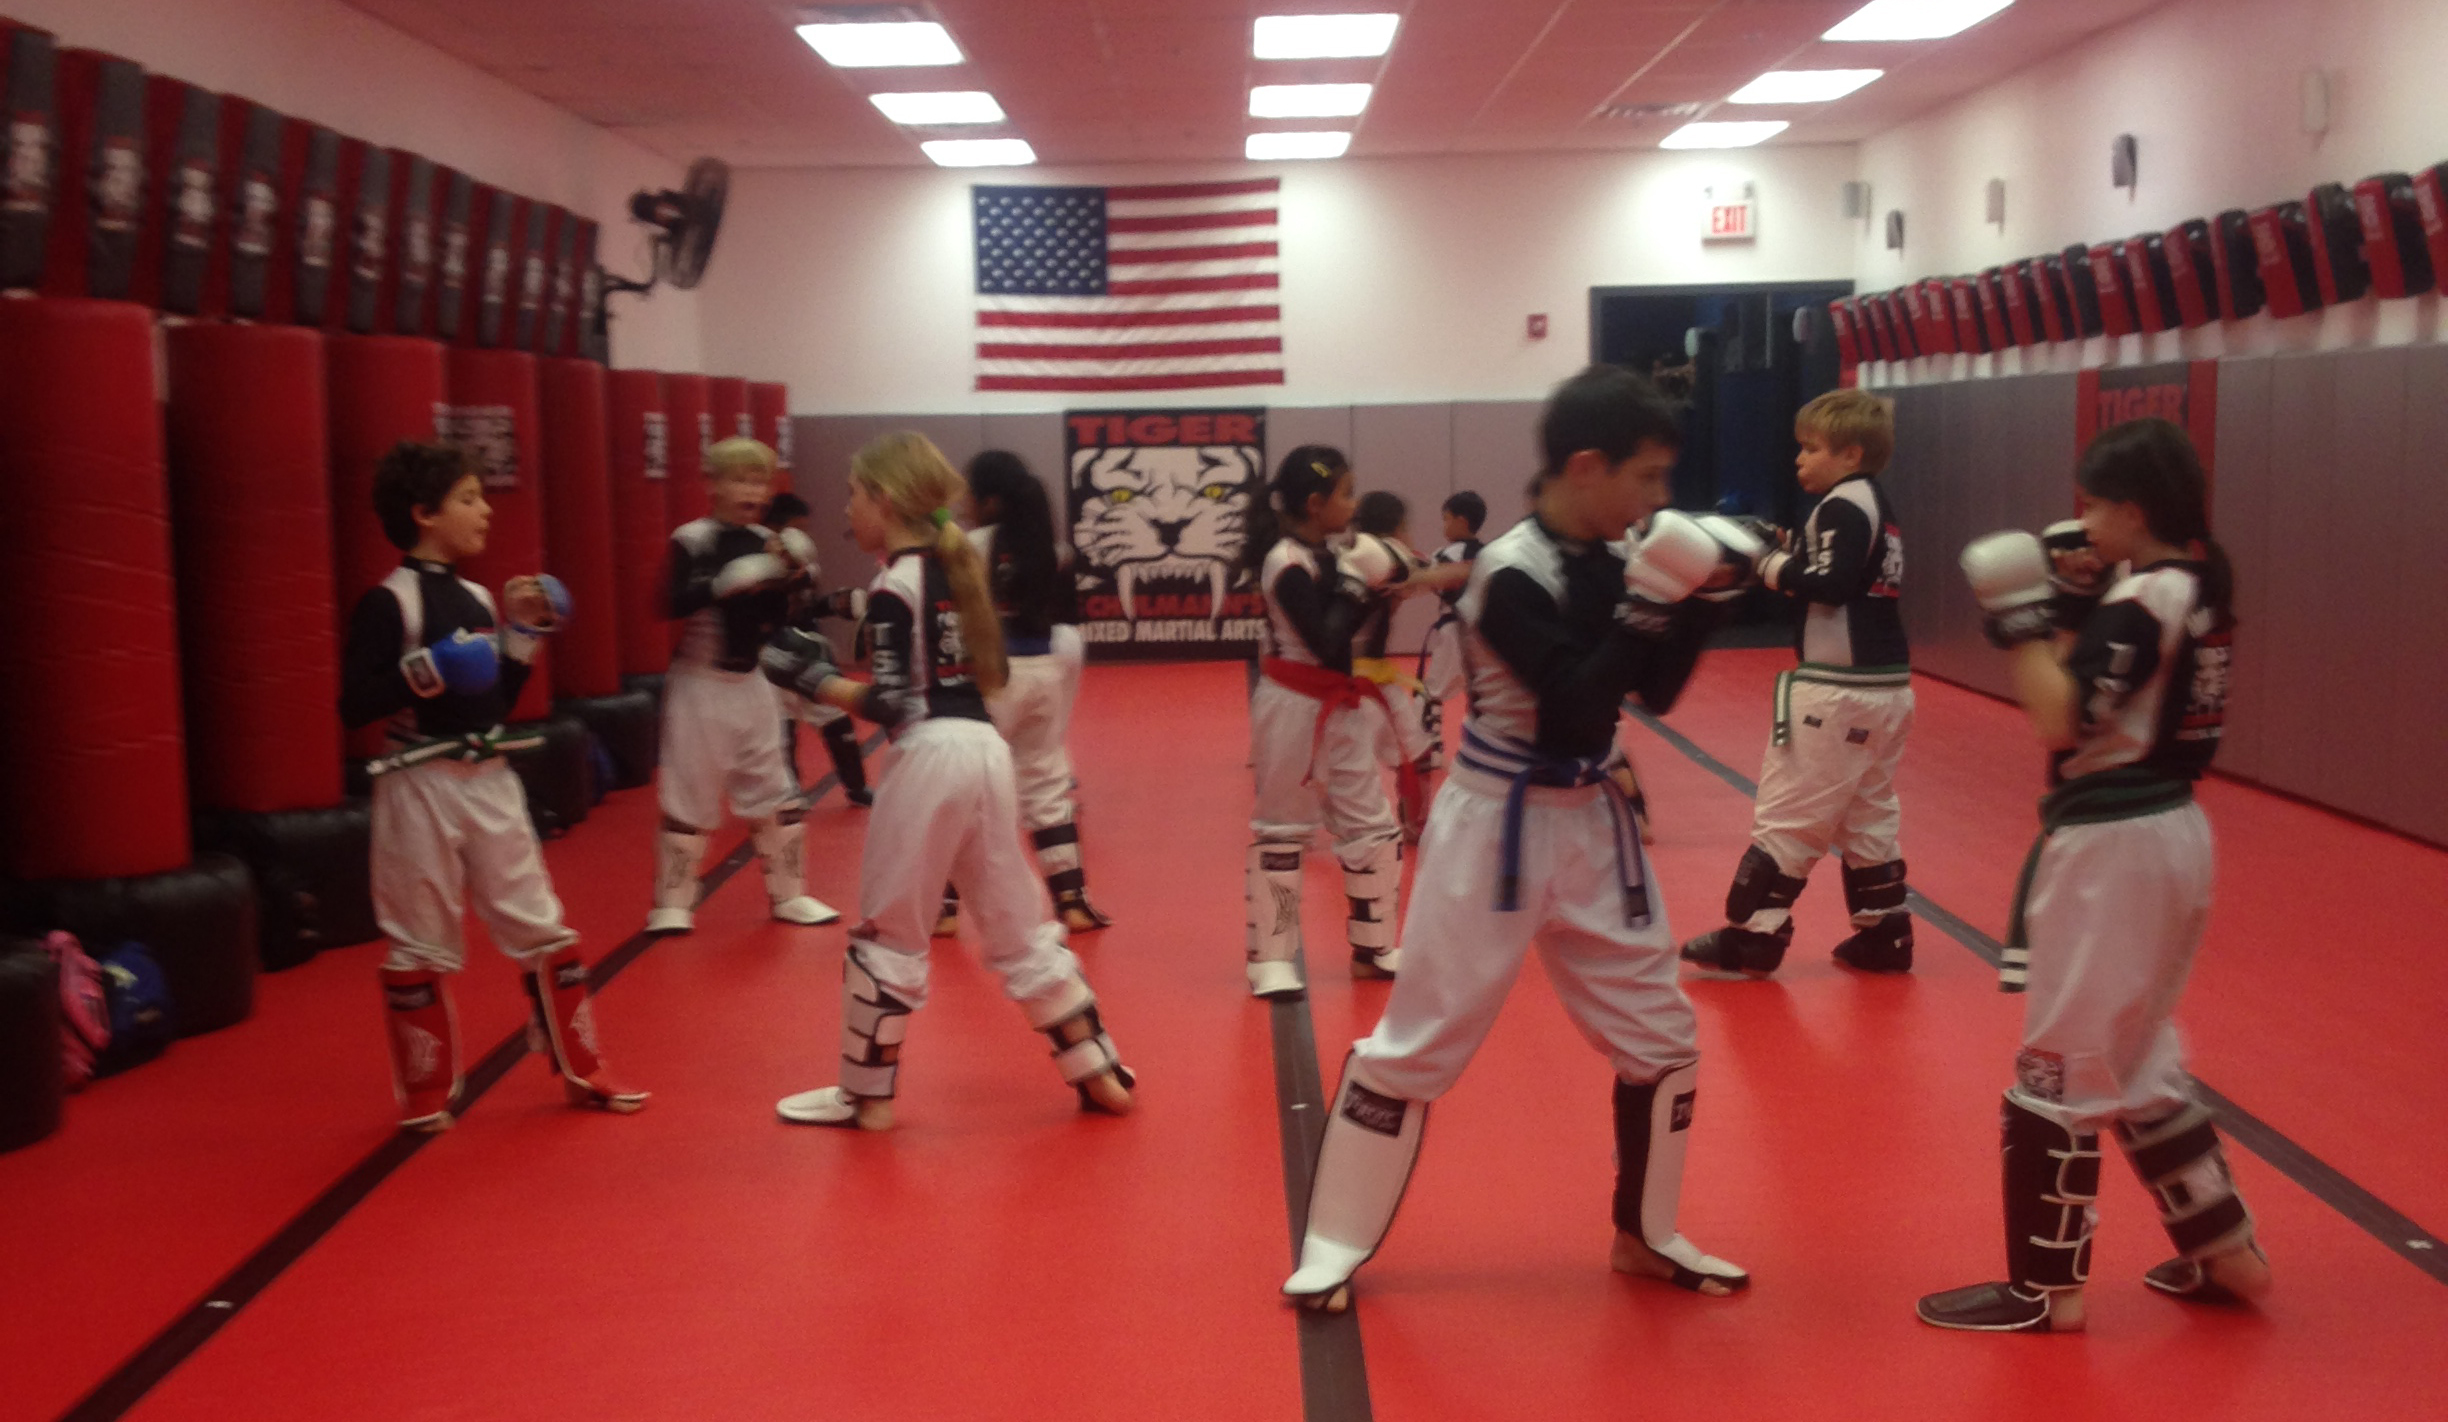 Martial arts gives the tool of confidence to stop bullying